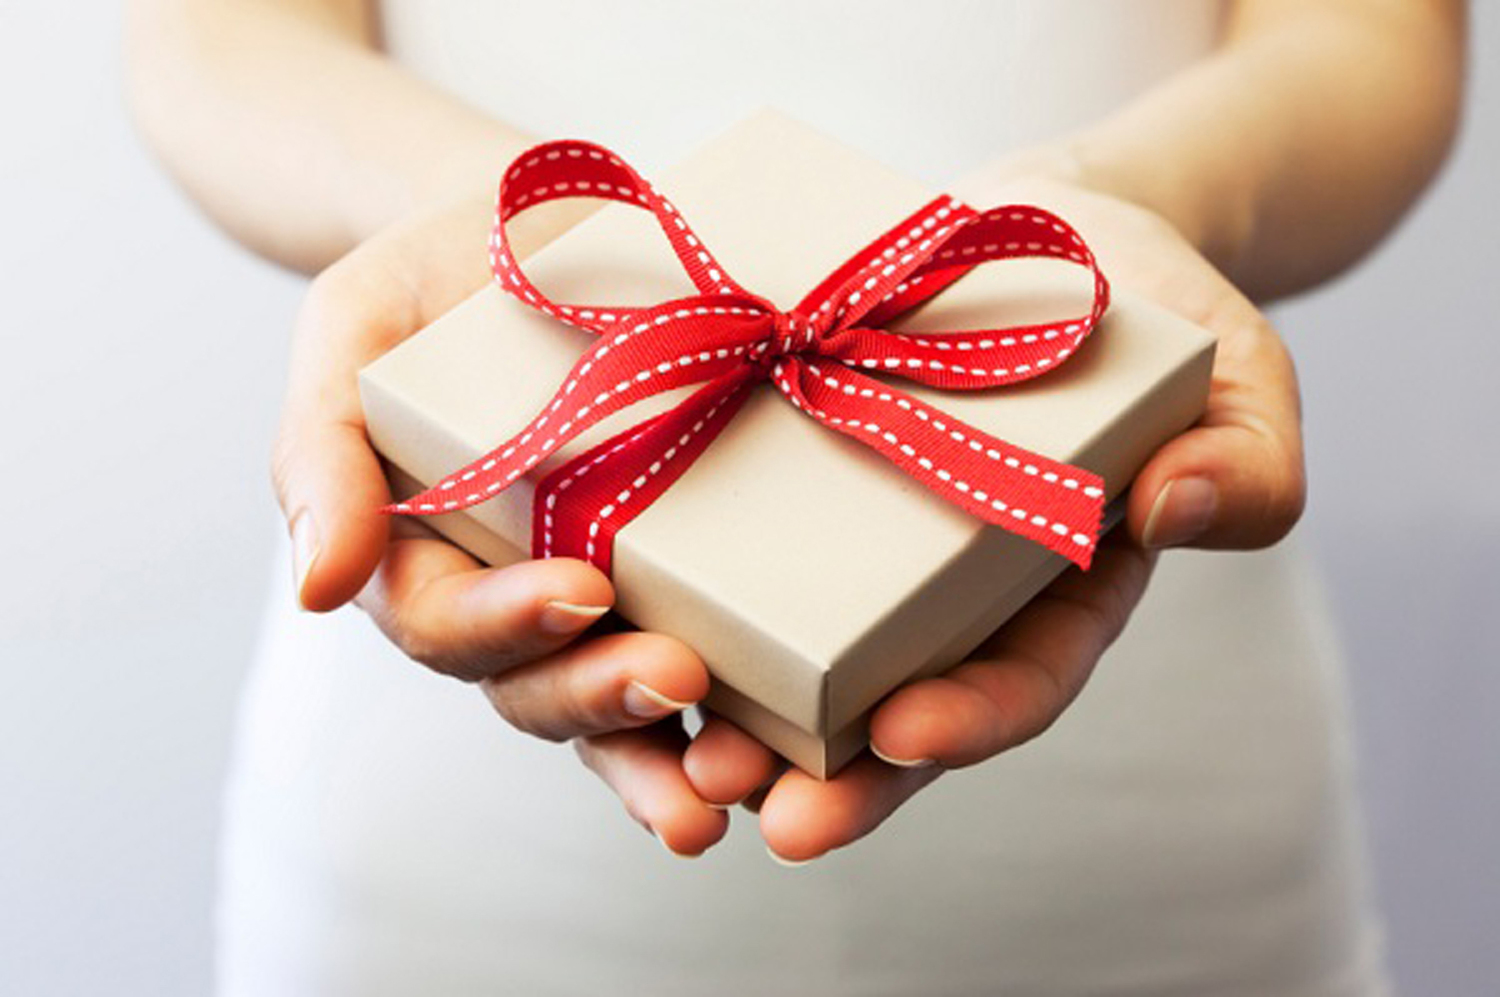 10 thoughtful gifts under 20 for cancer patients